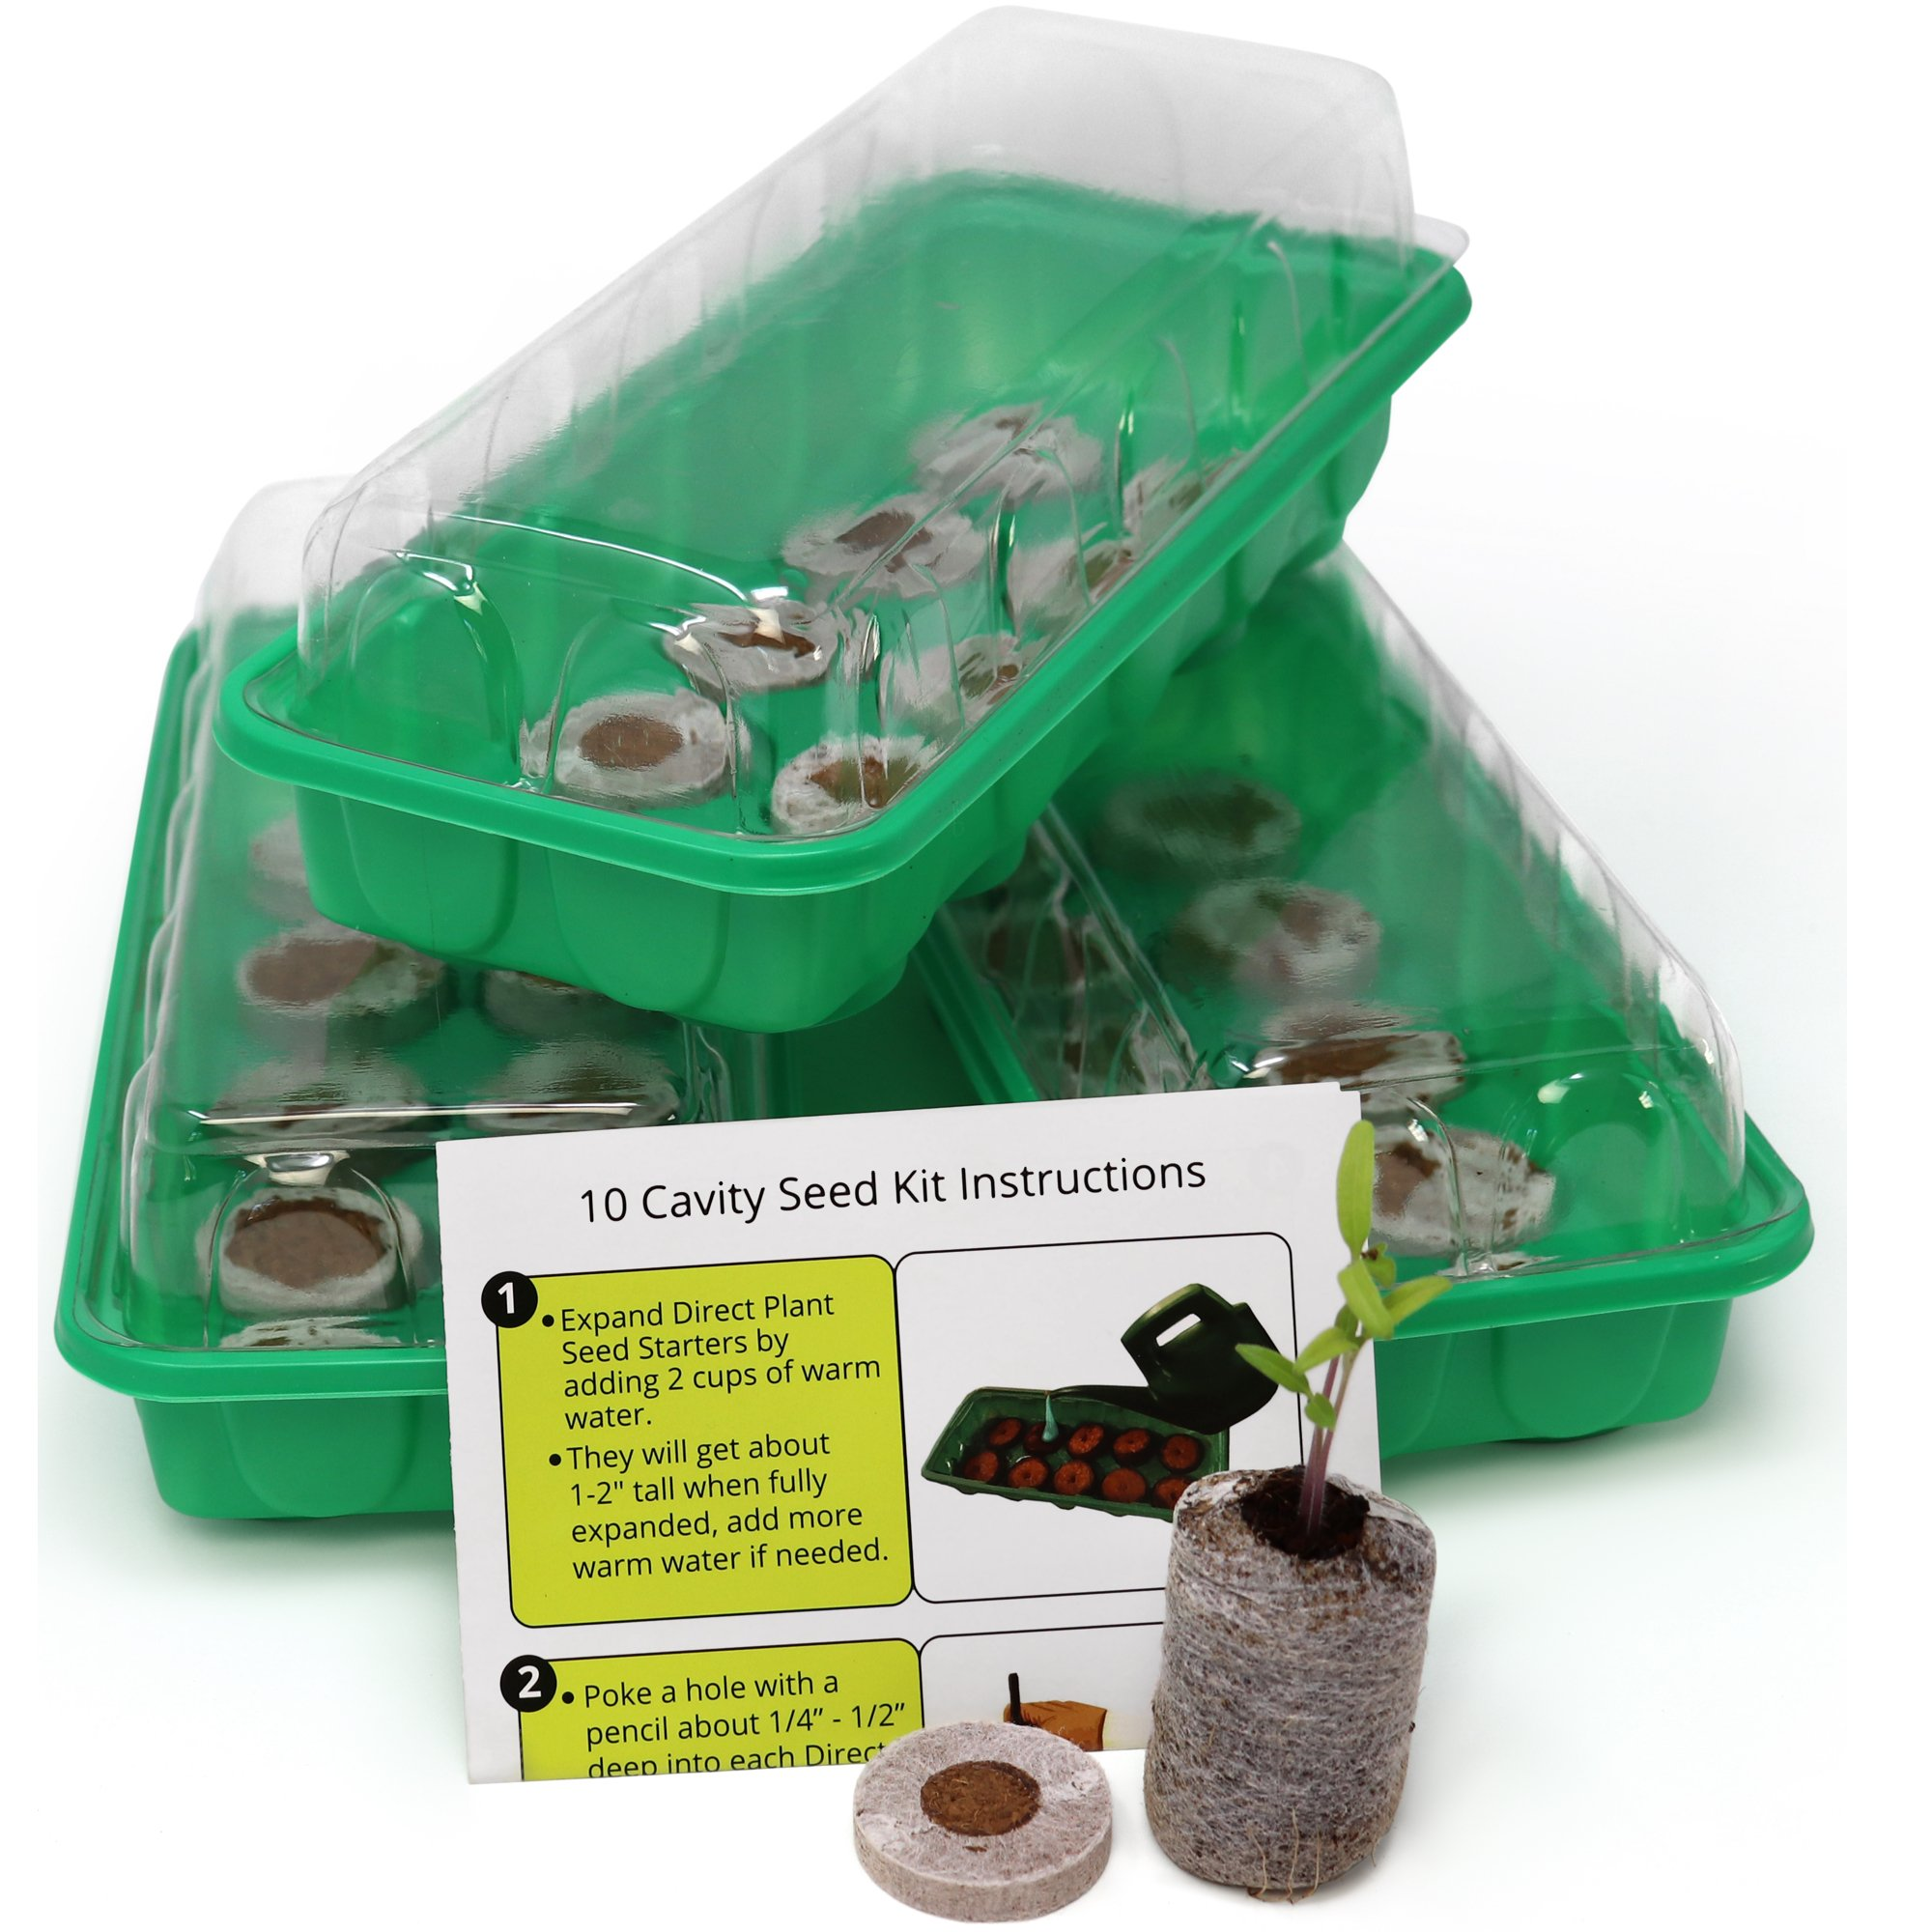 Seed Starting Kit – Complete Supplies – 3 Mini Greenhouse Trays with Dome fits on Windowsill, Fiber Soil Pods, Detailed Instructions. Indoor/Outdoor Gardening. Grow Herbs, Flowers and Vegetables.